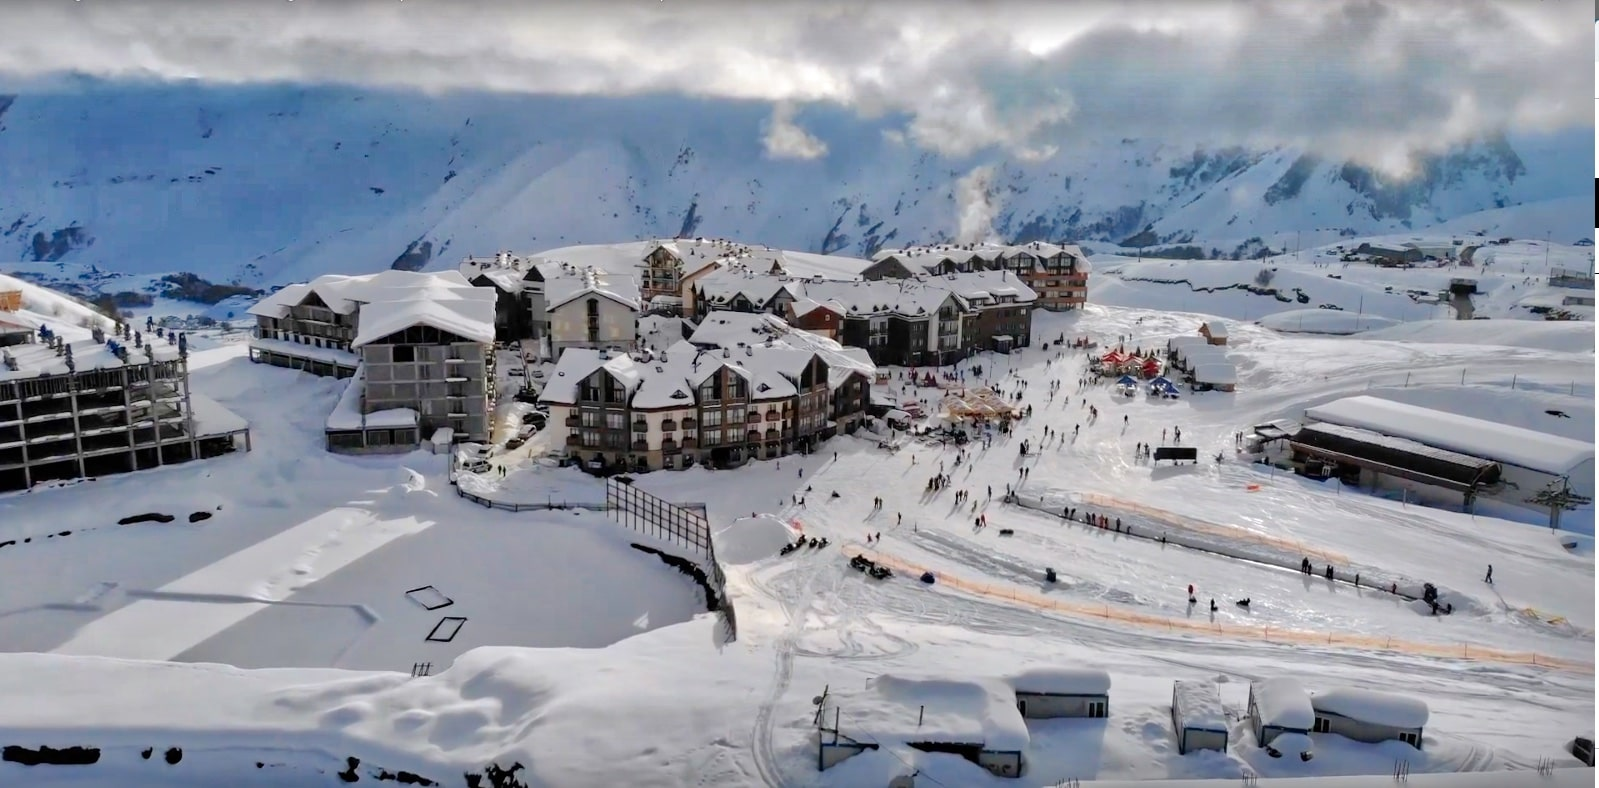 Snow and wine 7 Day Ski tour